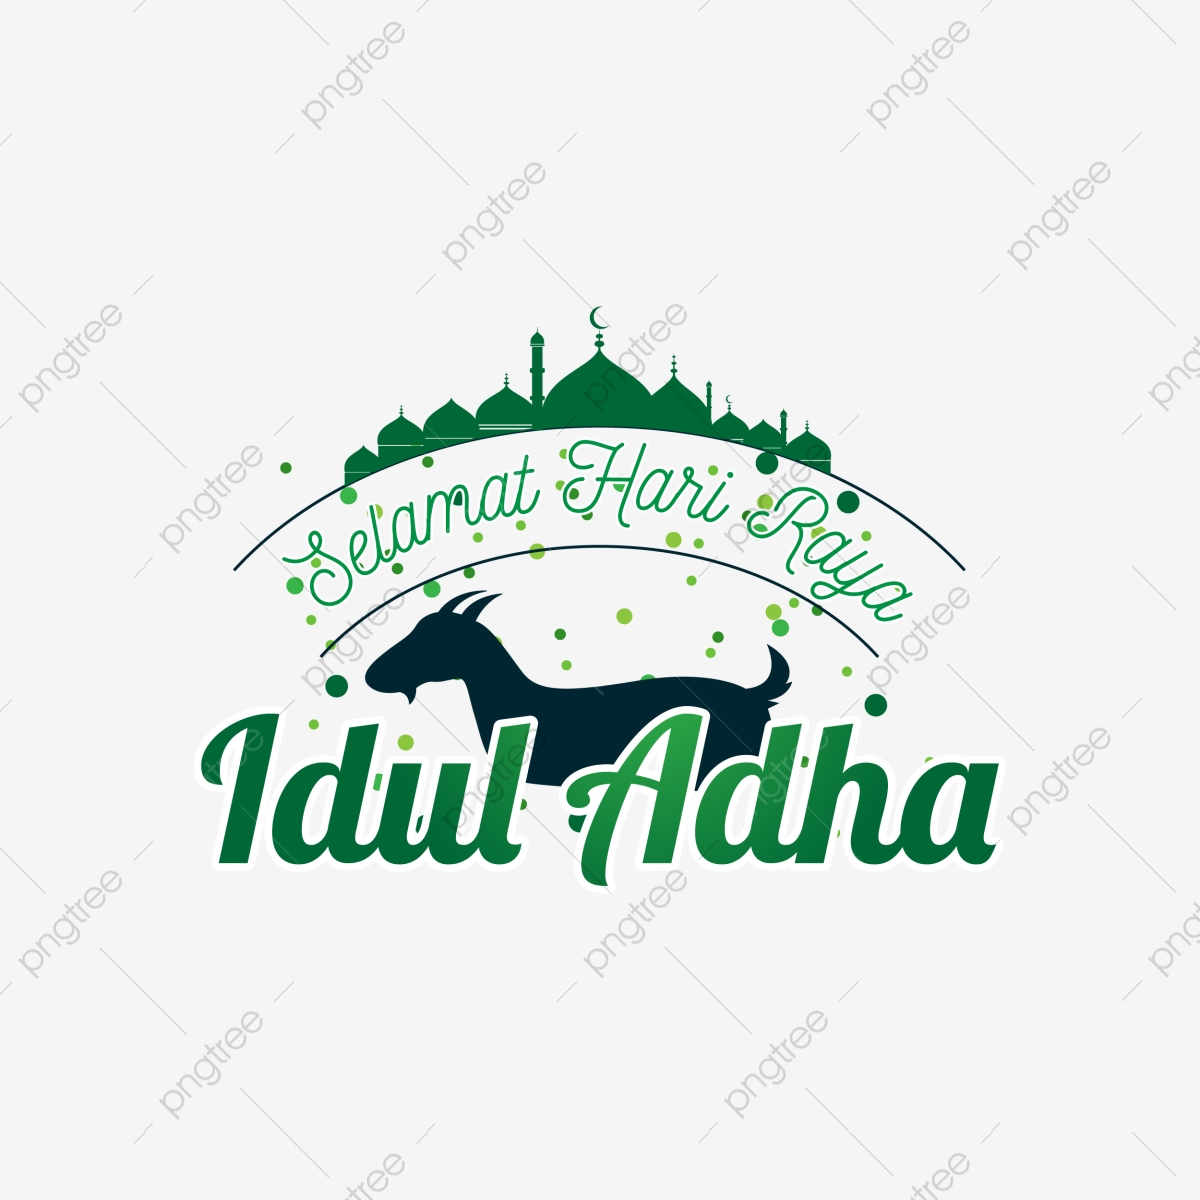 idul adha png images vector and psd files free download on pngtree https pngtree com freepng typography selamat hari raya idul adha with sheep illustration 5424725 html